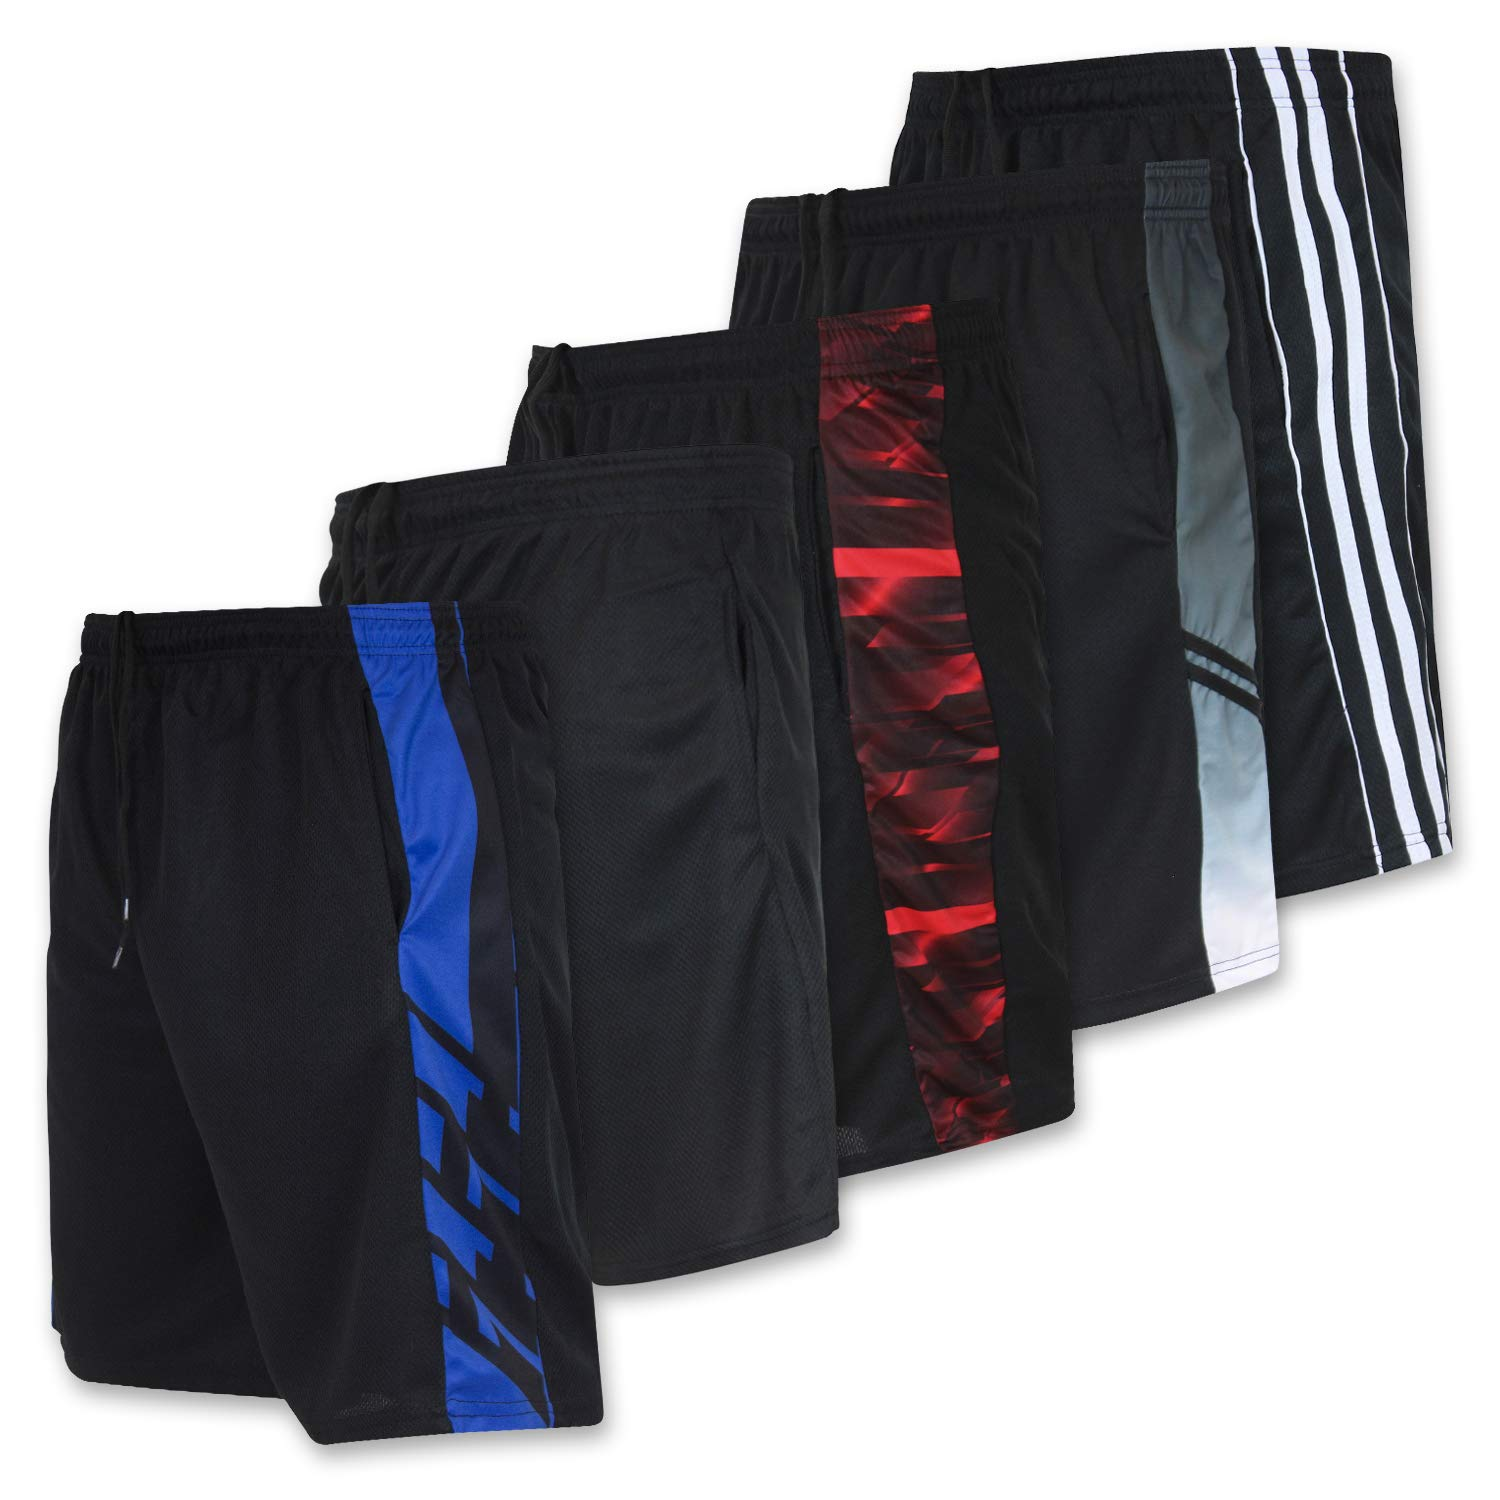 Men's Mesh Active Athletic Basketball Essentials Performance Gym Workout Clothes Sport Shorts Quick Dry - Set 8-5 Pack, S